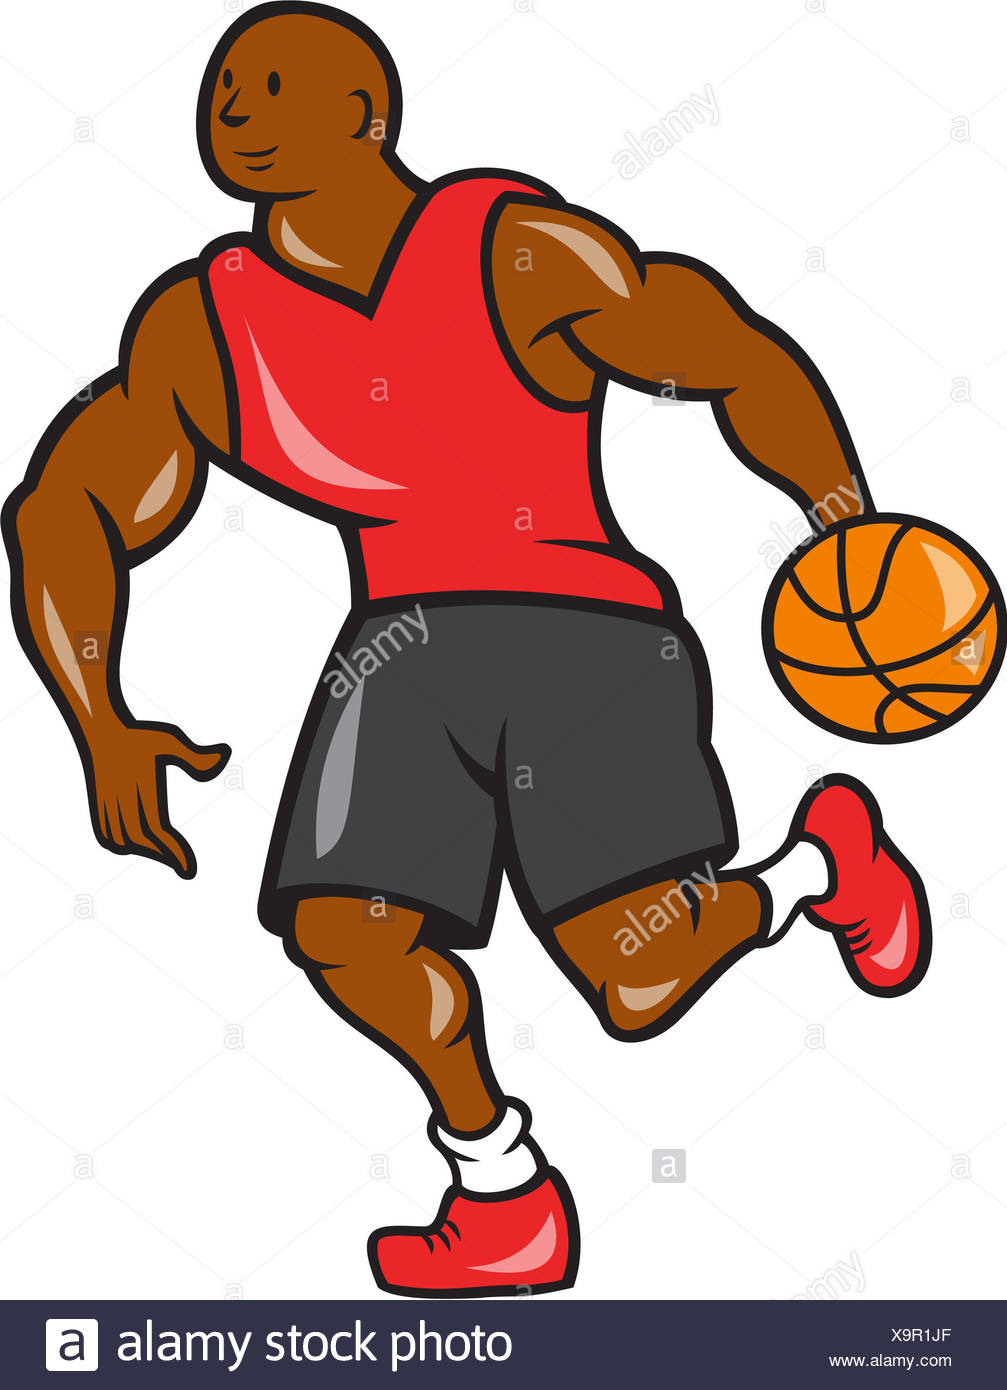 Illustration Basketball Player Dribbling Ball Stockfotos ...